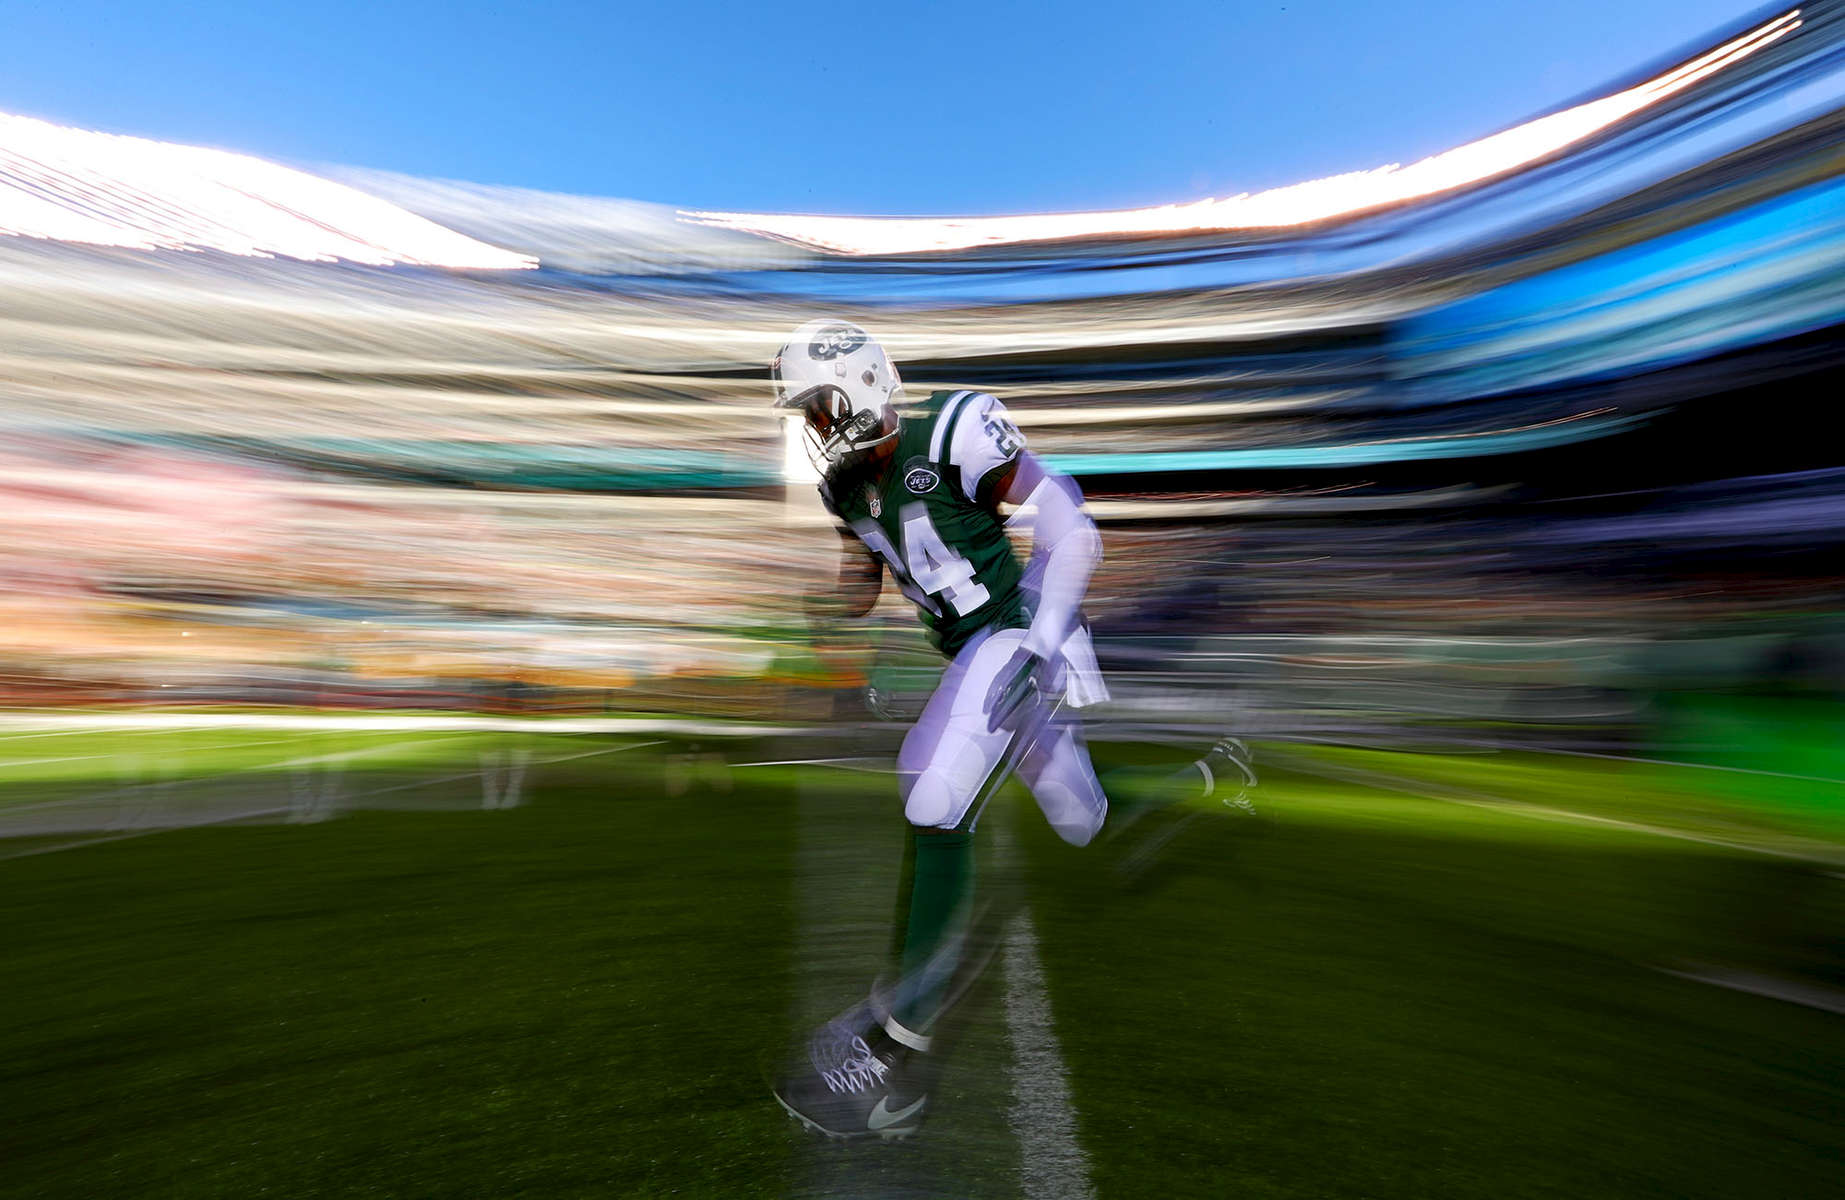 Darrelle Revis #24 of the New York Jets takes the field before the game against the Los Angeles Rams at MetLife Stadium on November 13, 2016 in East Rutherford, New Jersey.